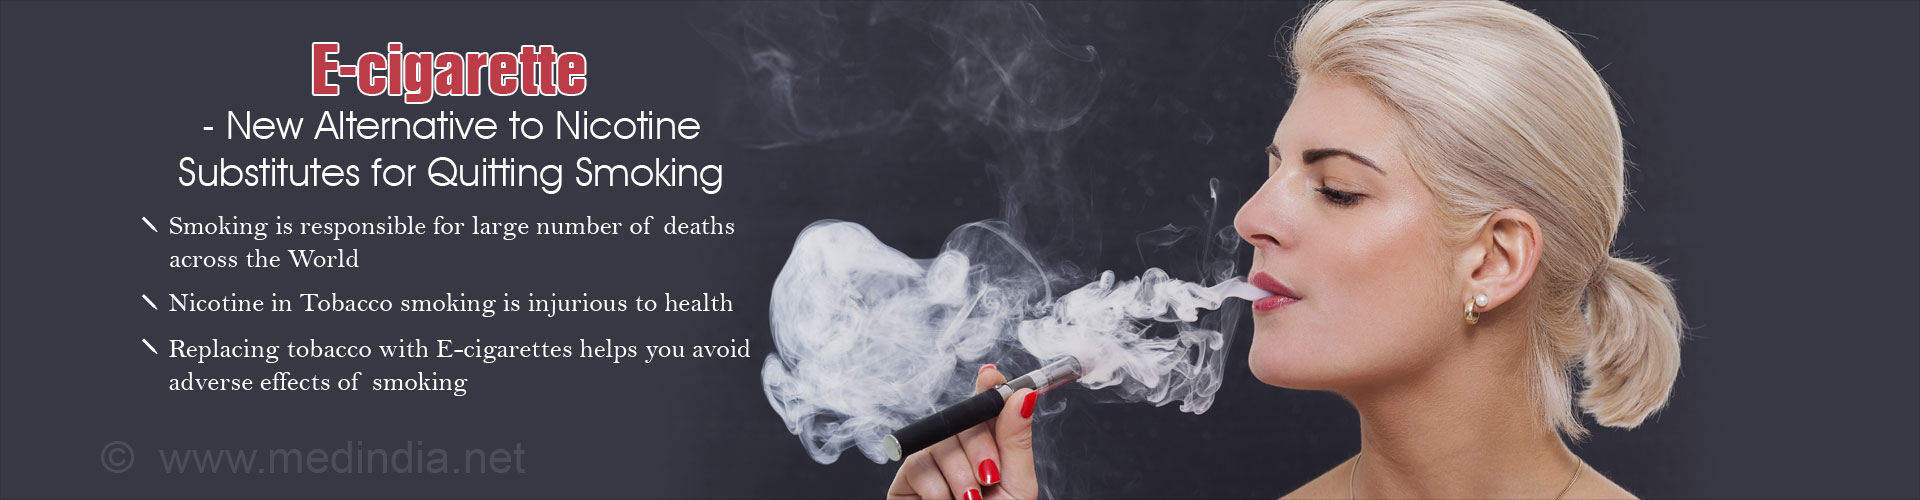 E-cigarette May Help to Quit Smoking With Minimal Side Effects, Suggest Studies